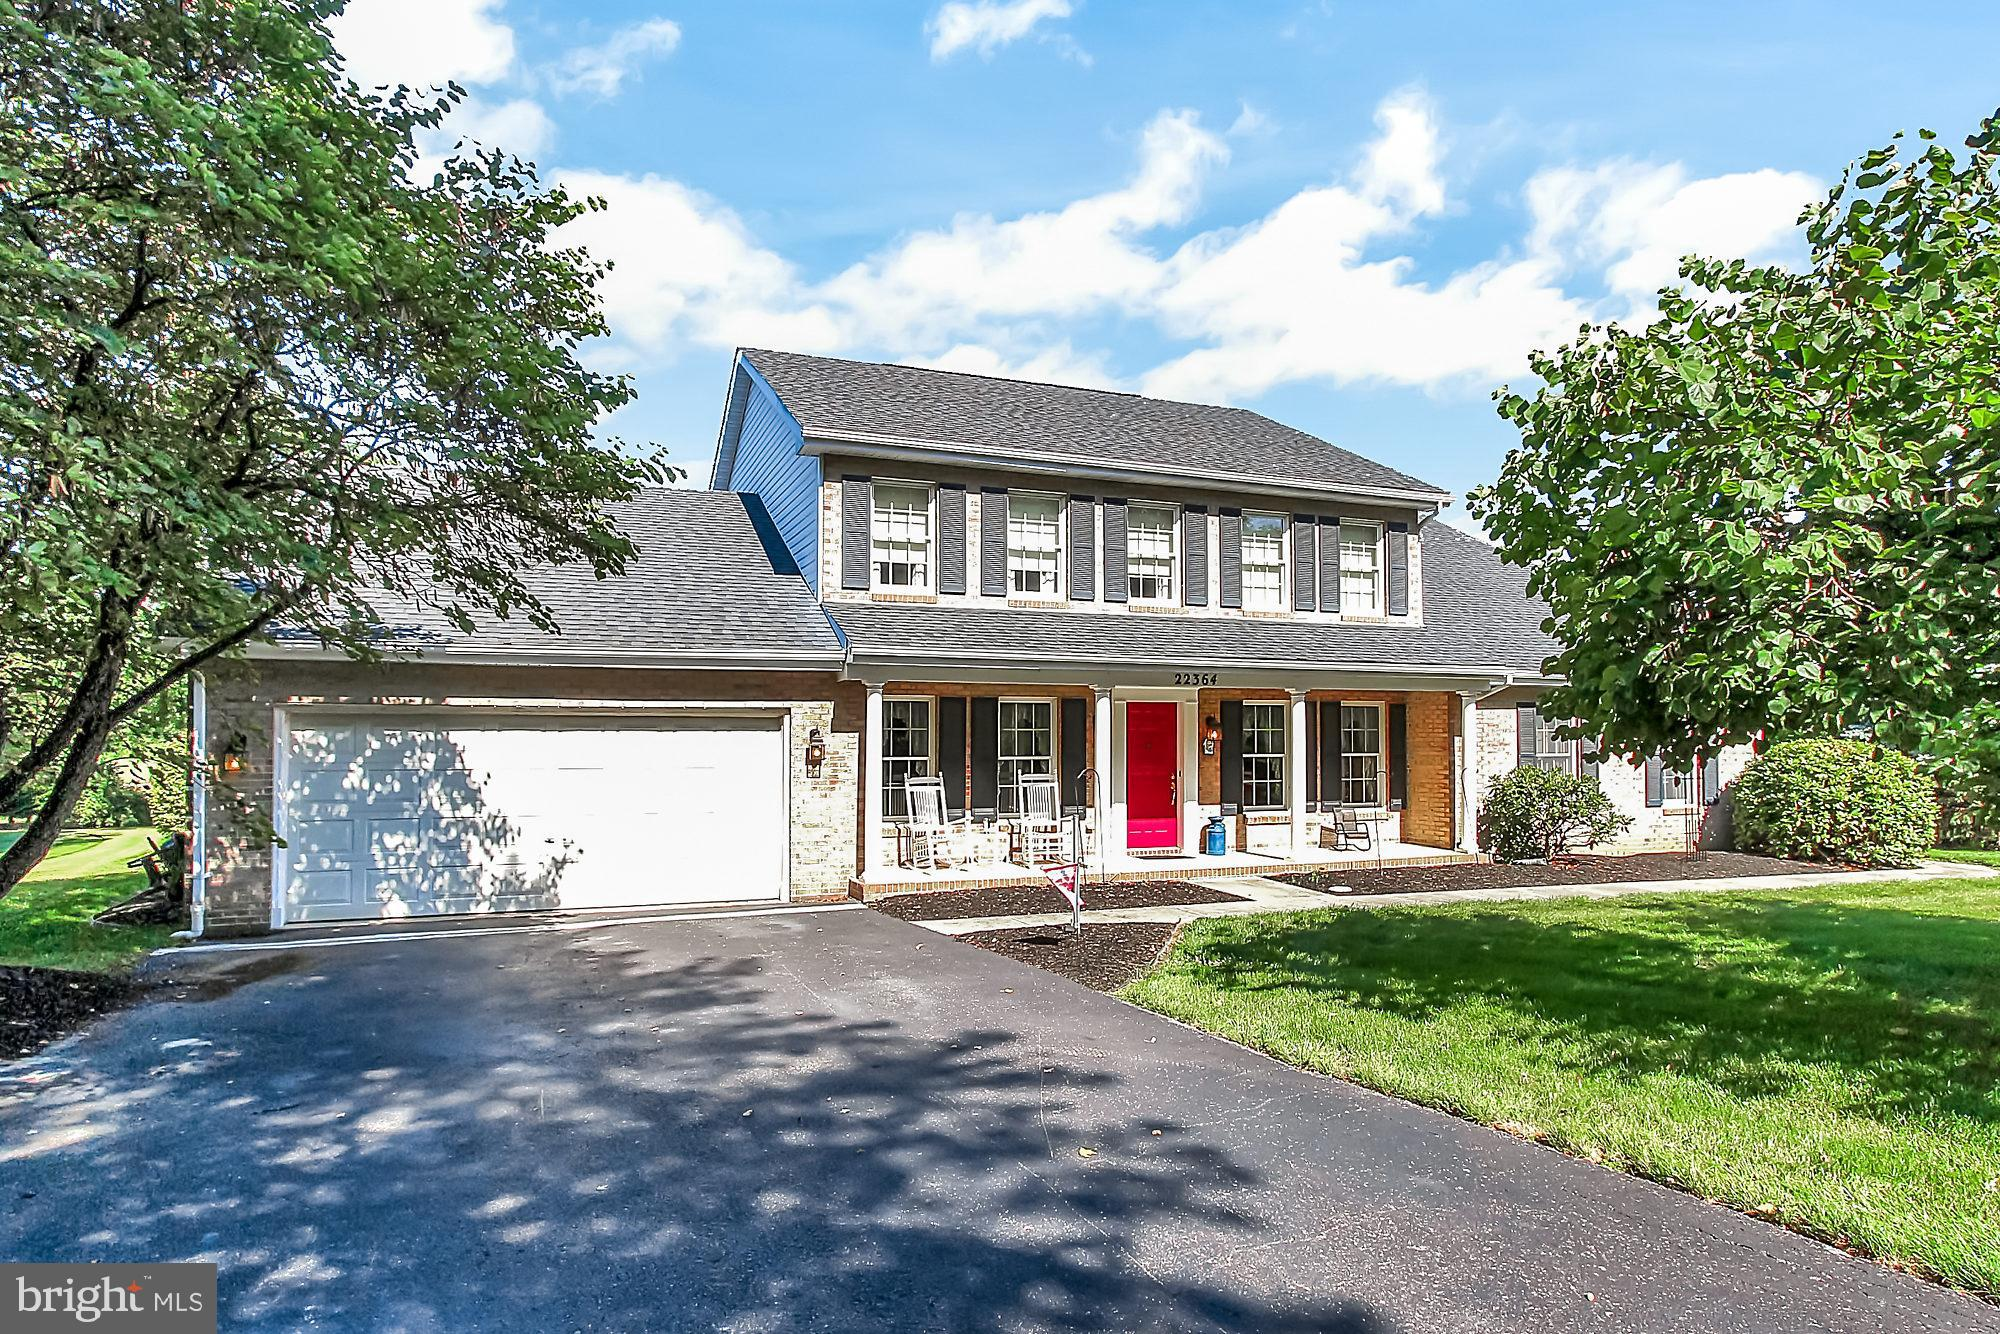 22364 DURBERRY ROAD, SMITHSBURG, MD 21783